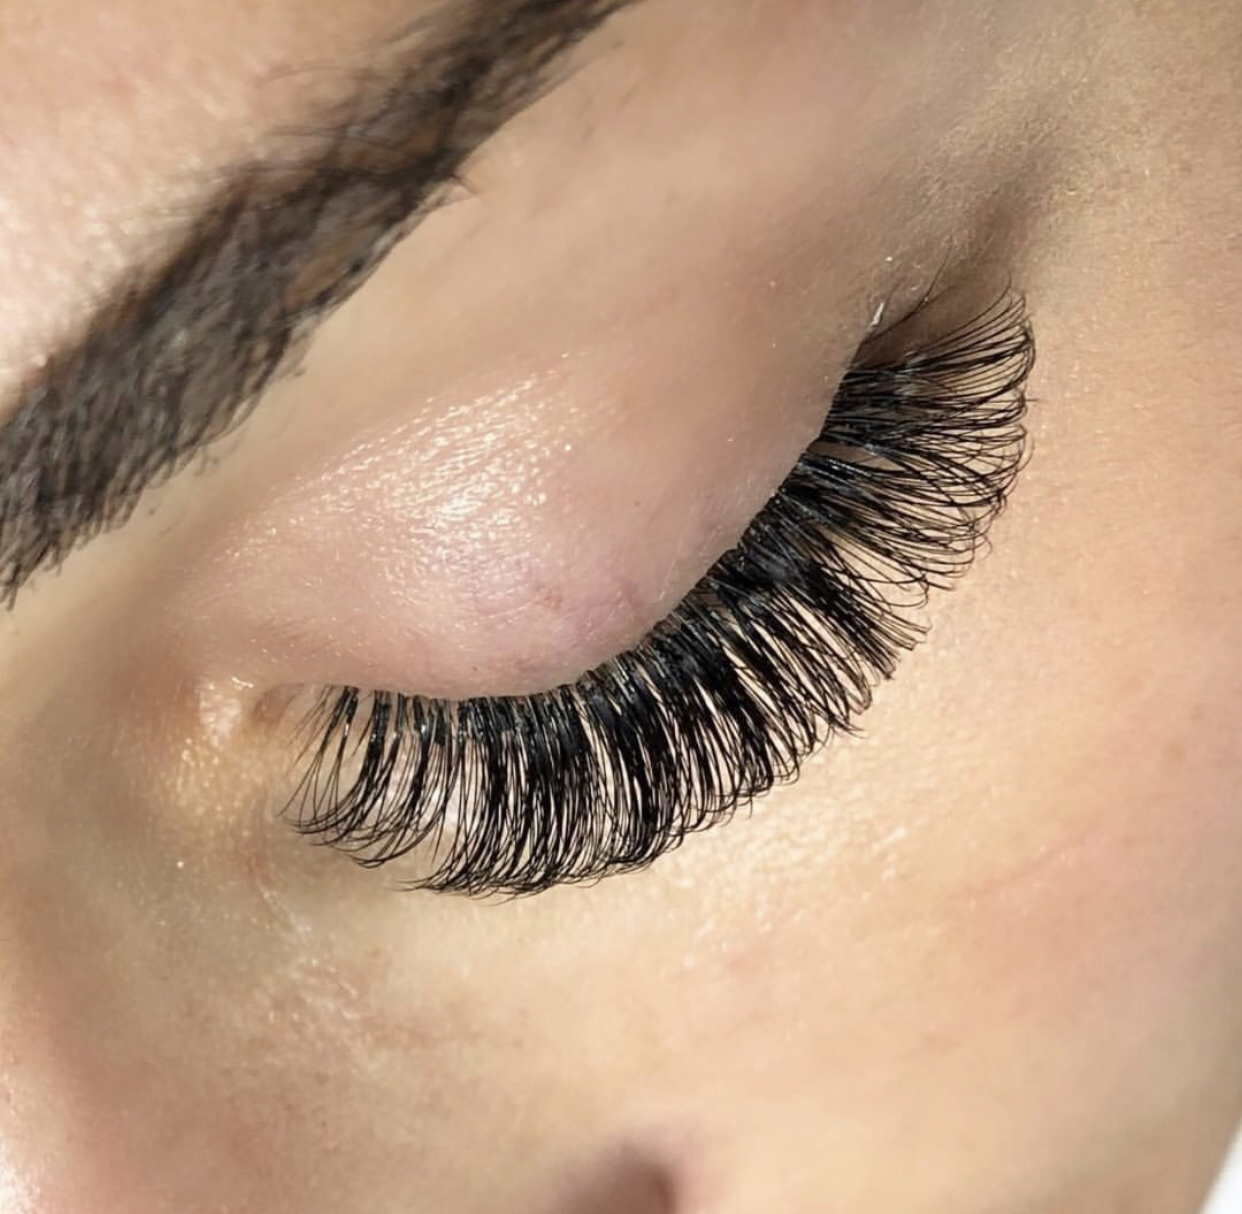 Volume Lash Extensions are 3-5 light weight, fan-like extensions which are applied to each one of your natural eyelashes. They are great for clients with sparse or patchy natural lashes that desire a full look without any lash damage. You can expect a fuller, fluffy look in comparison to Classic Lash Extensions.